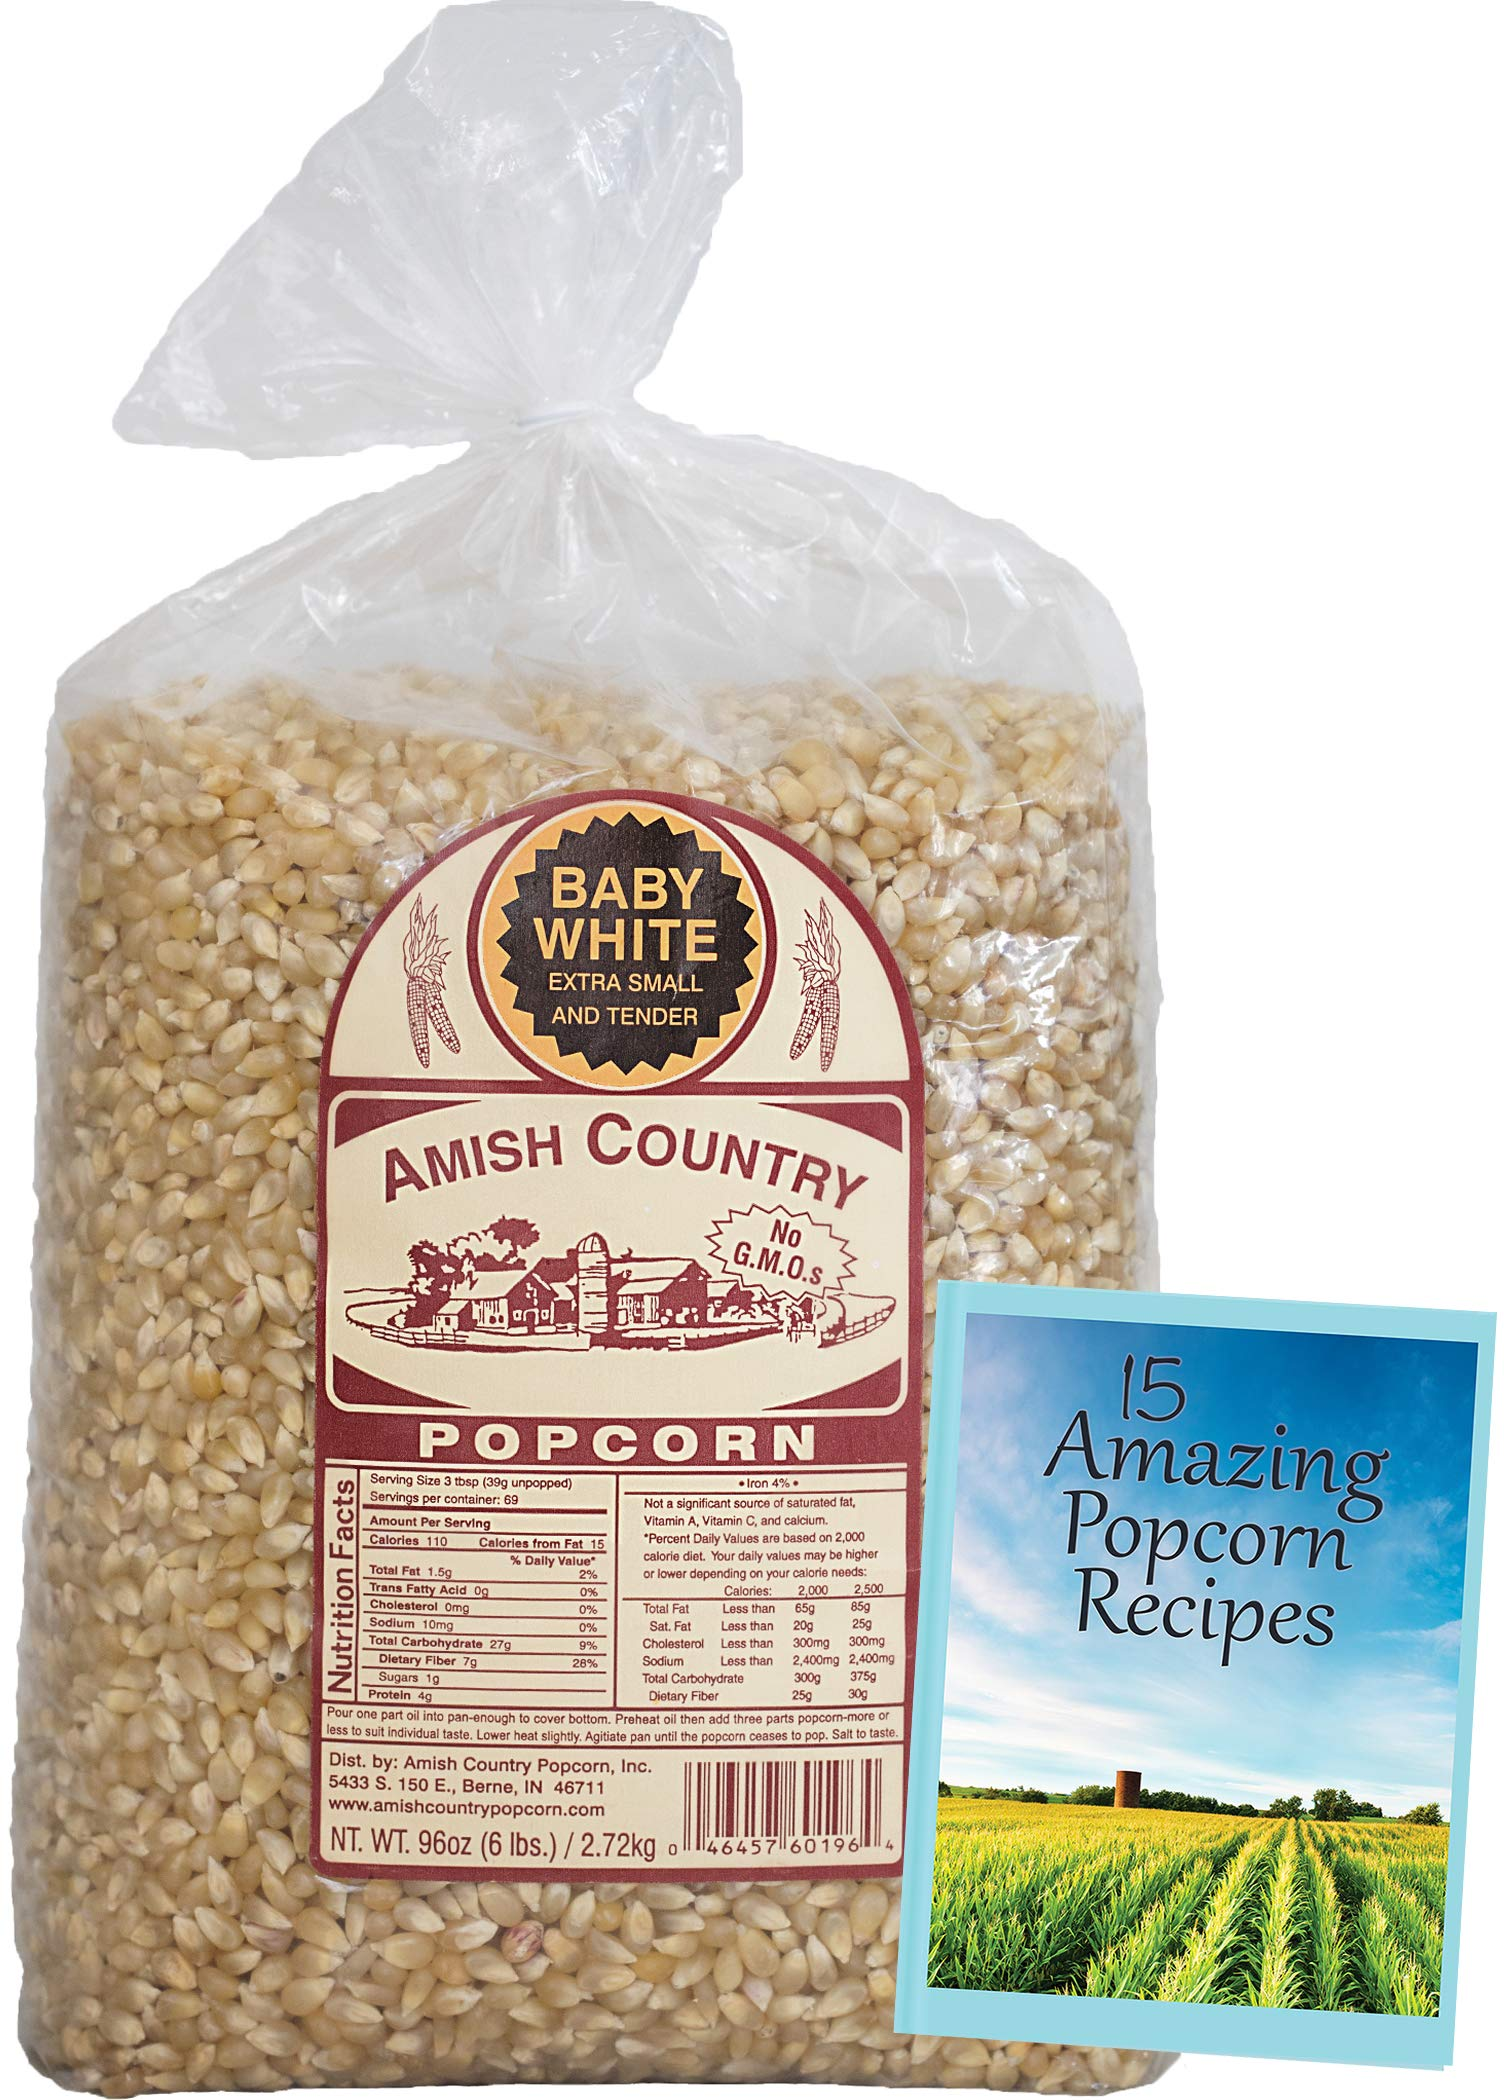 Amish Country Popcorn - Baby White (6 Pound Bag) - Small & Tender Popcorn - Old Fashioned And Delicious with Recipe Guide by Amish Country Popcorn (Image #2)